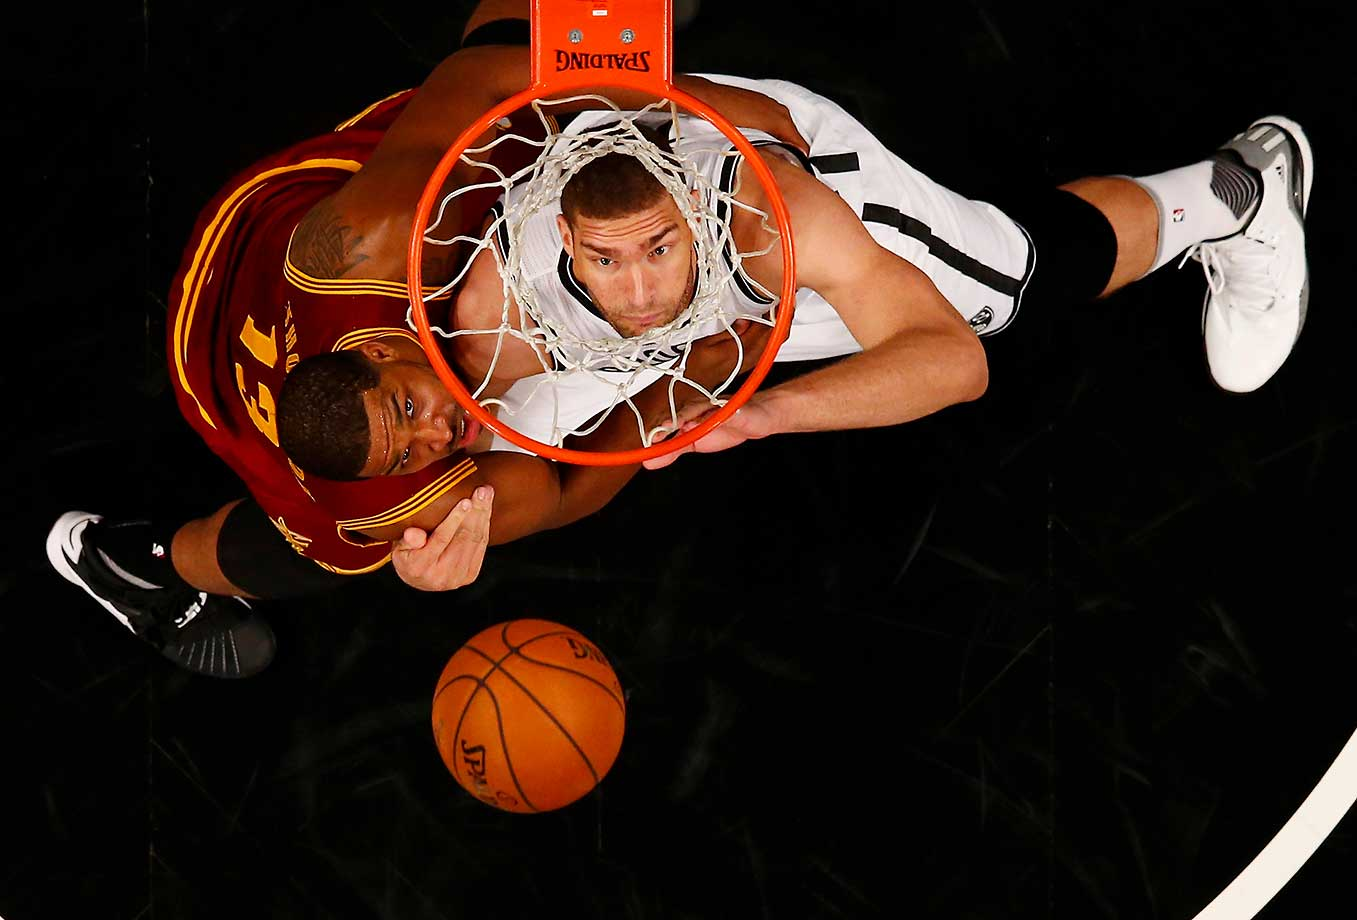 Brook Lopez of the Brooklyn Nets battles Tristan Thompson of the Cleveland Cavaliers for the ball during their game at the Barclays Center.